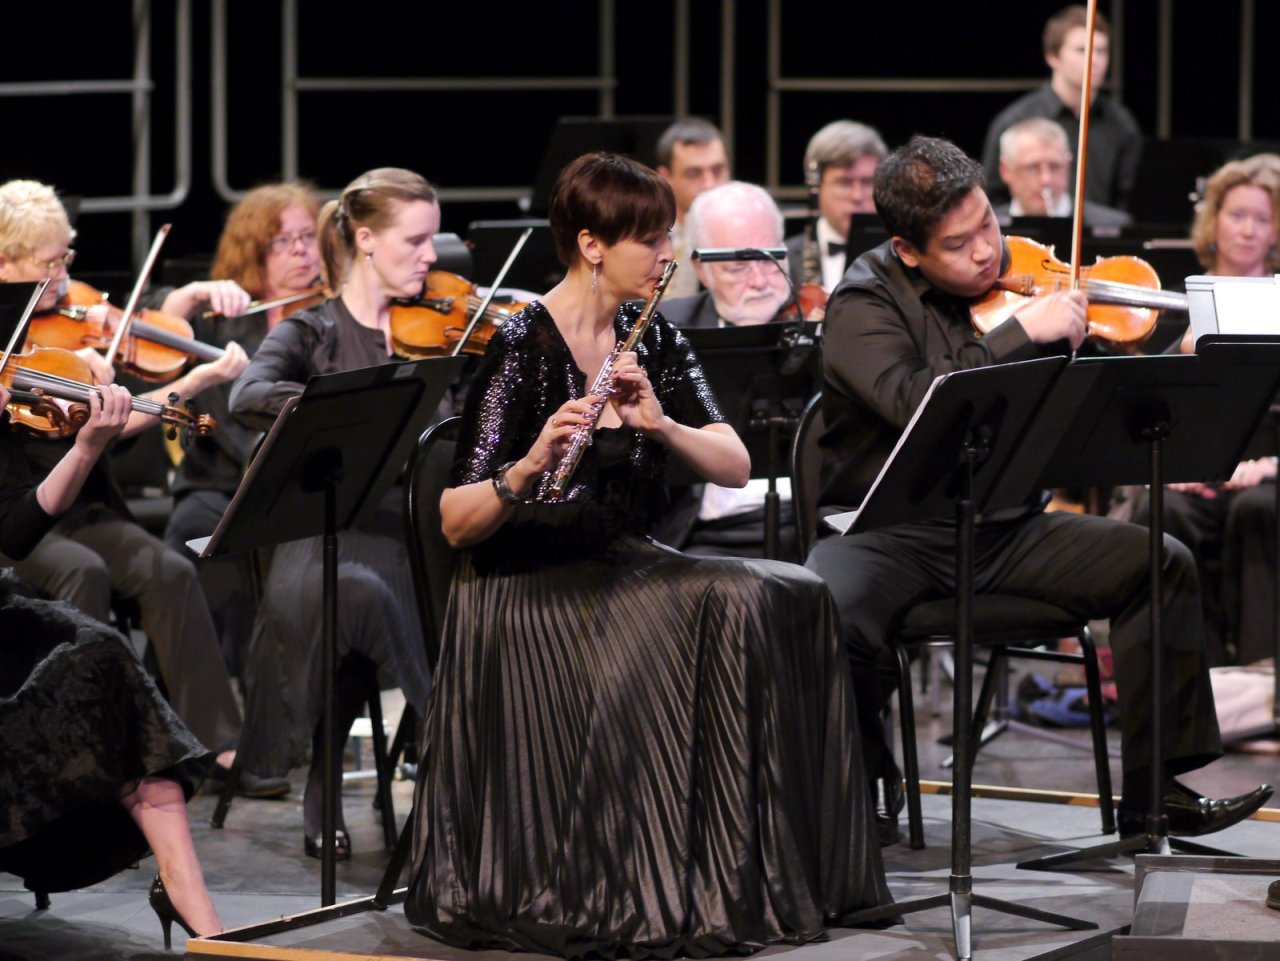 In concert with the West Coast Symphony Orchestra, Photographer Slaven Radic